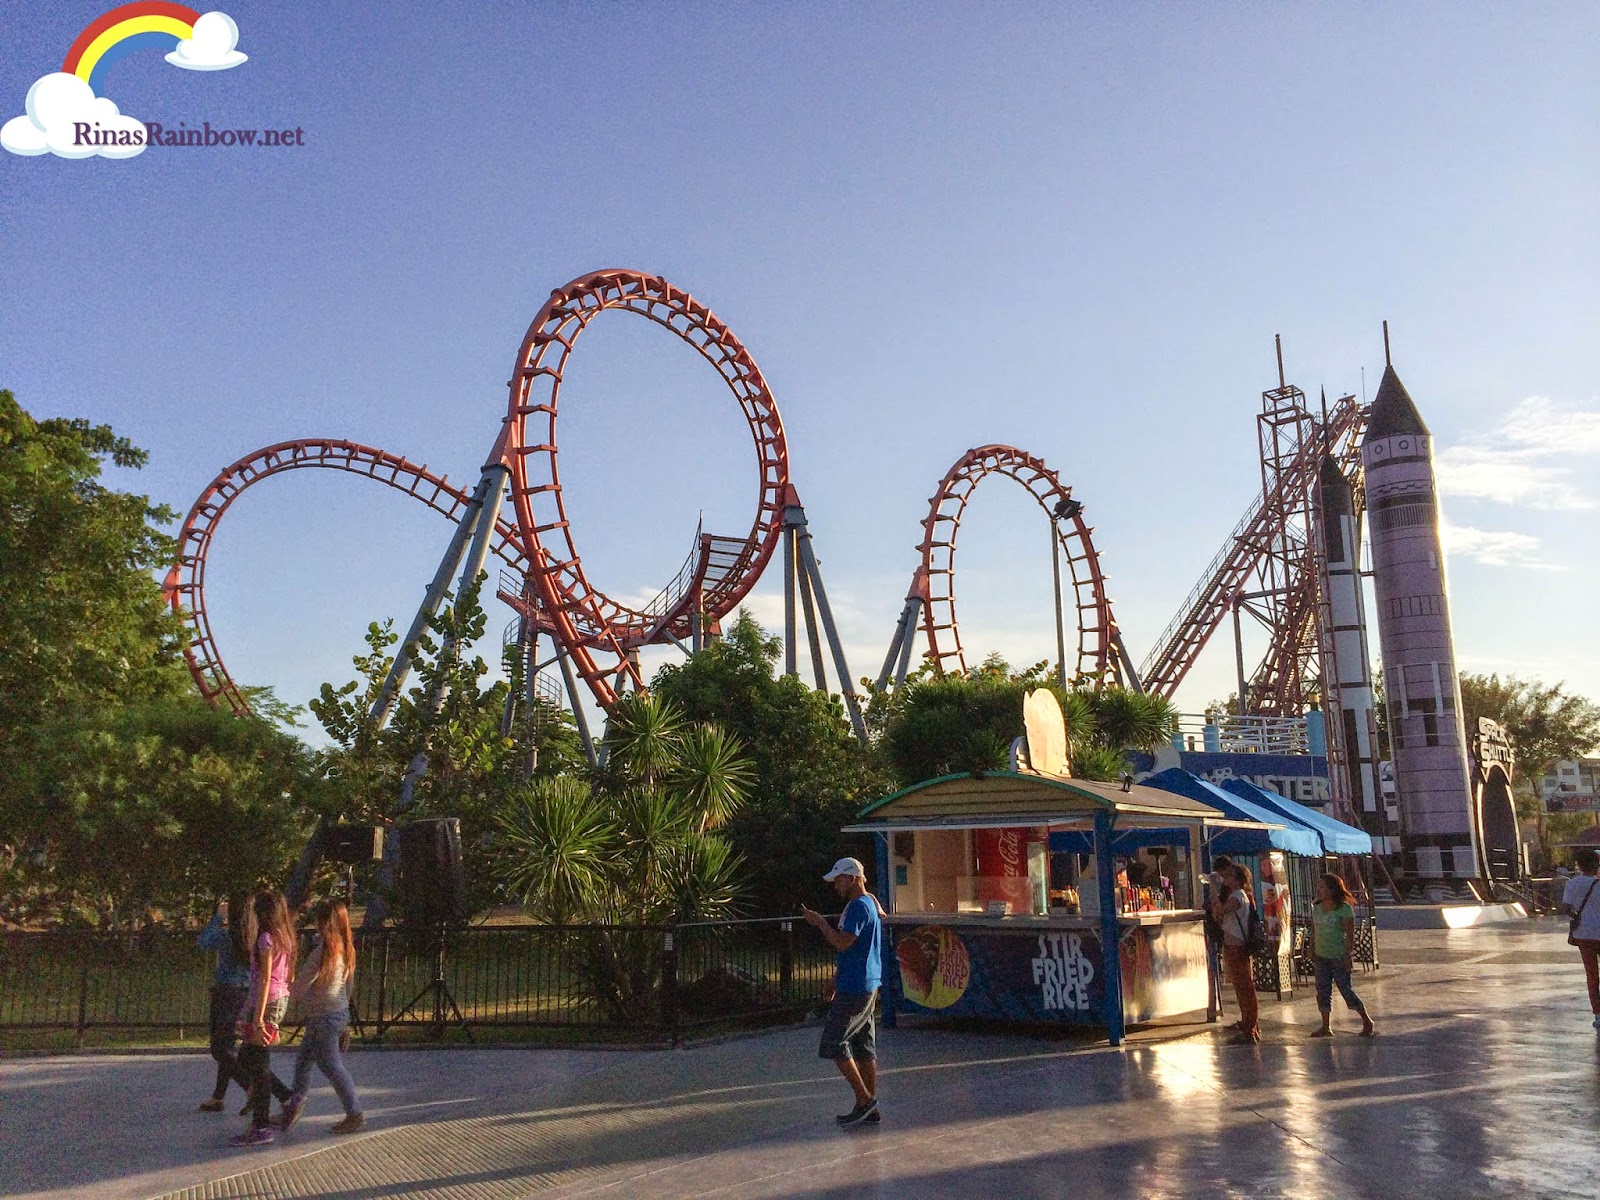 enchanted kingdom space shuttle